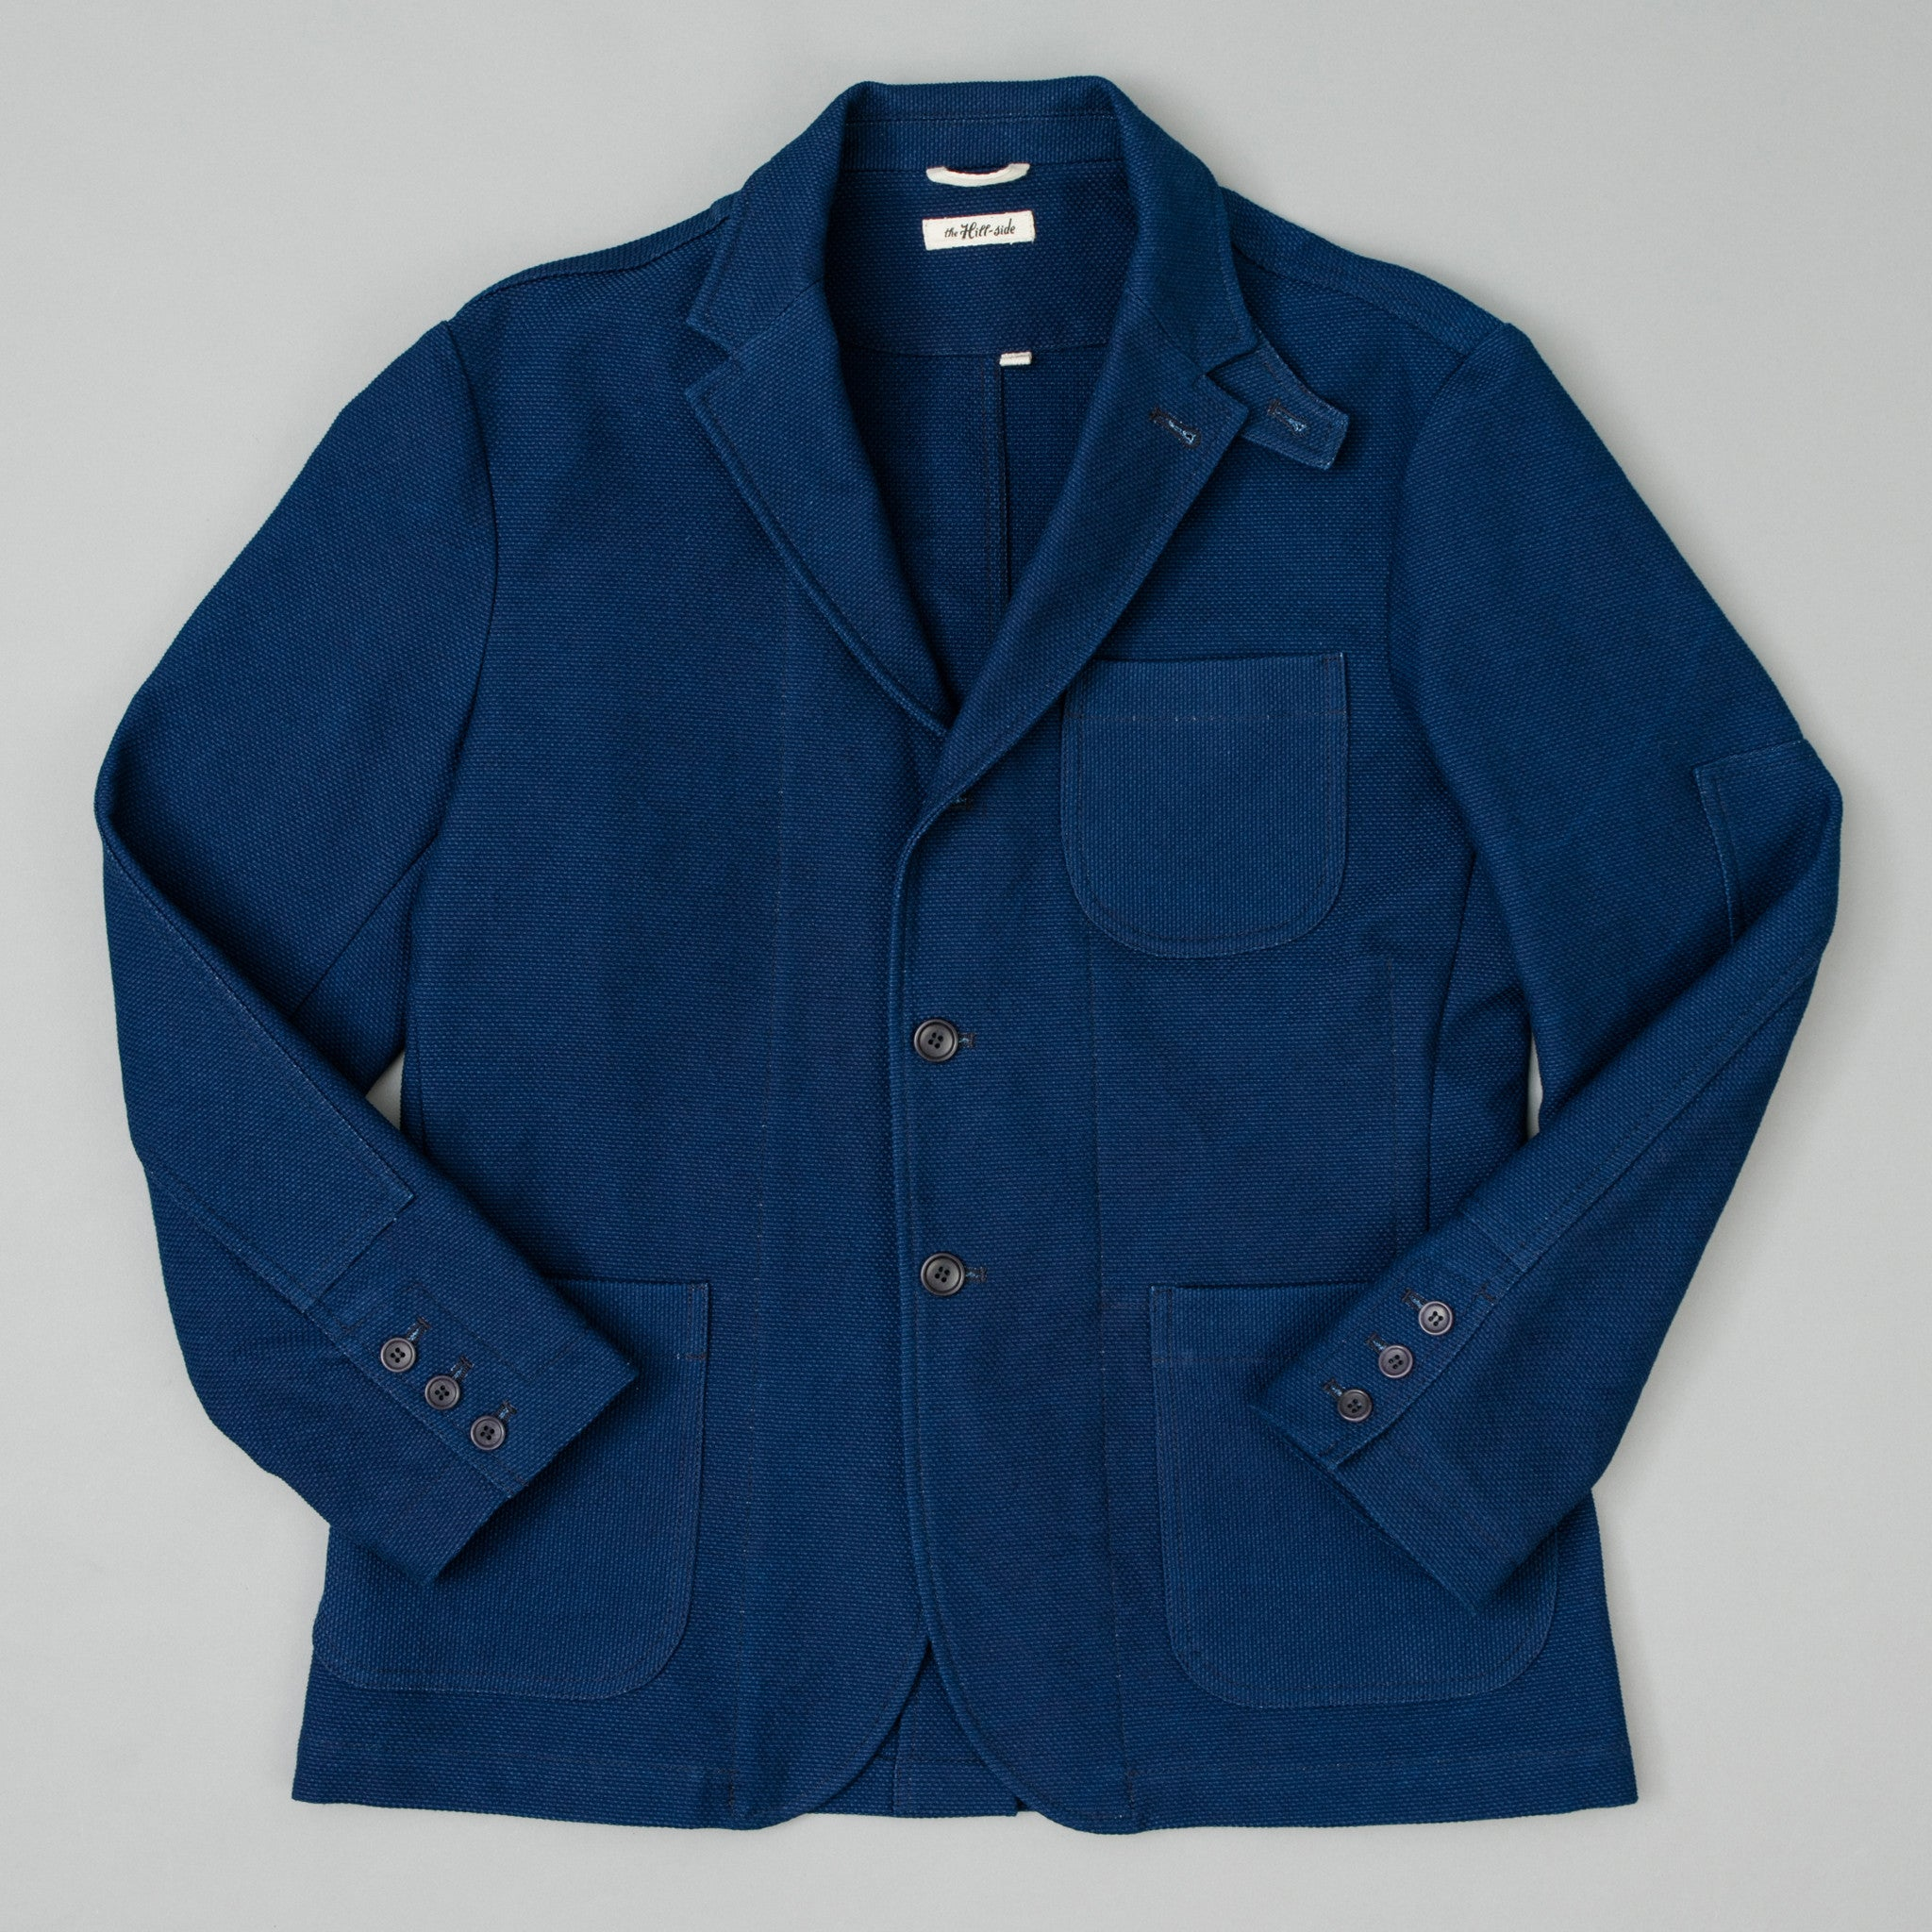 The Hill-Side - Tailored Jacket, Selvedge Lightweight Indigo Sashiko - JK1A-244 - image 1